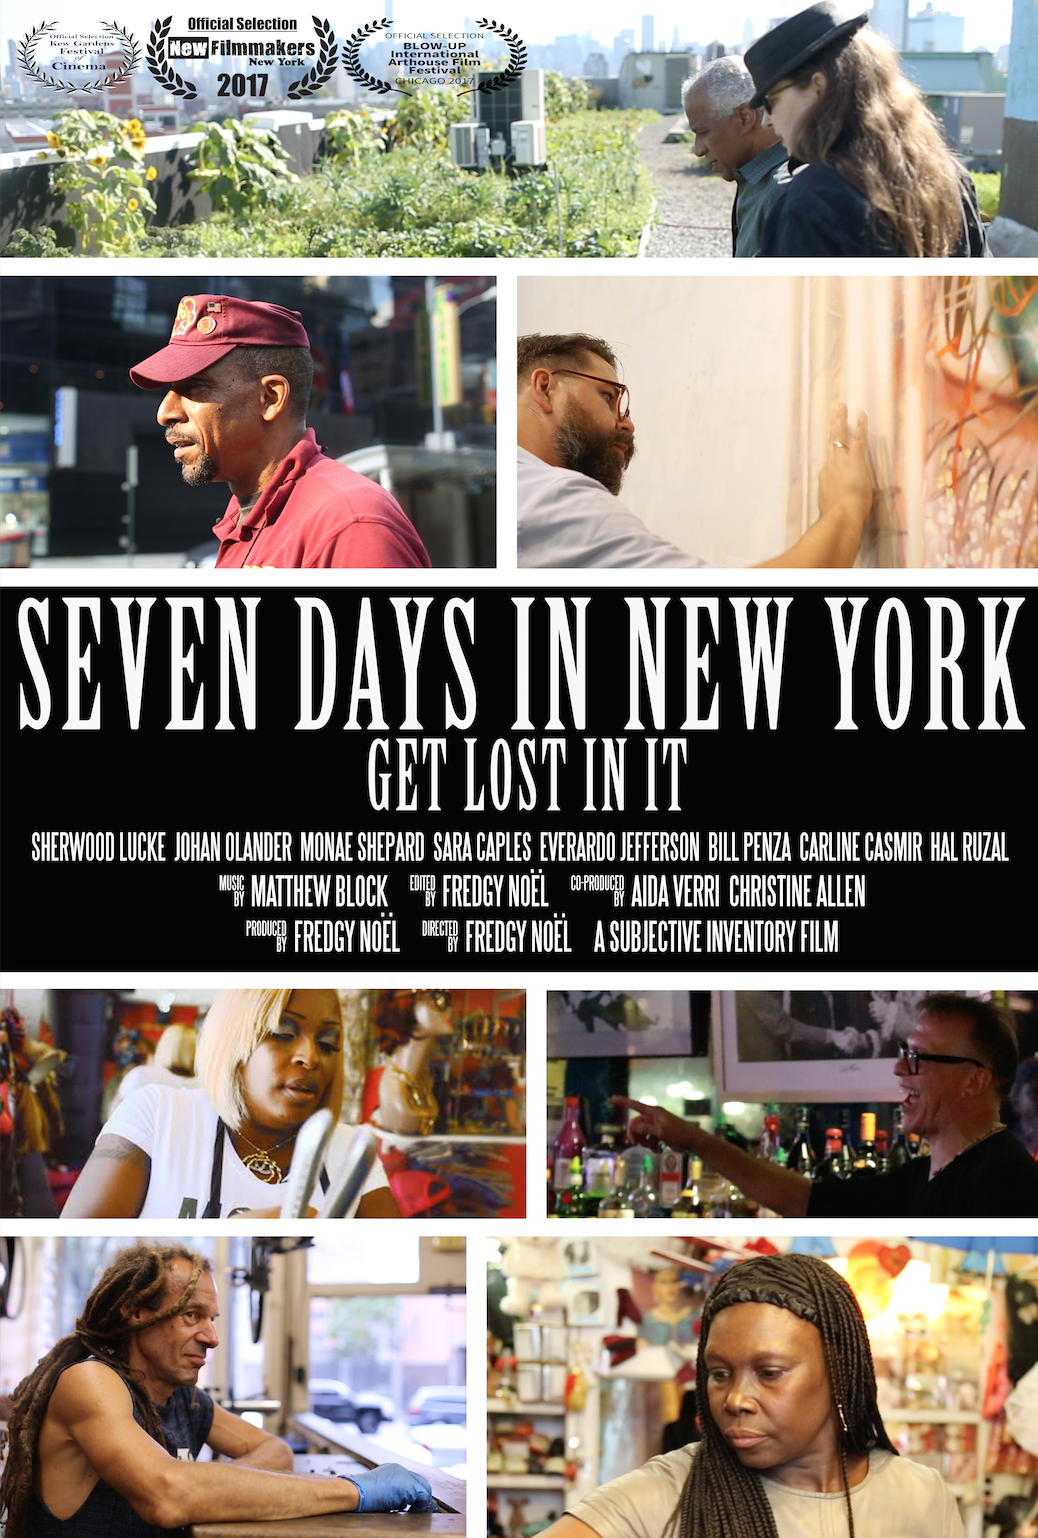 Seven Days In New York 12.9.17.png